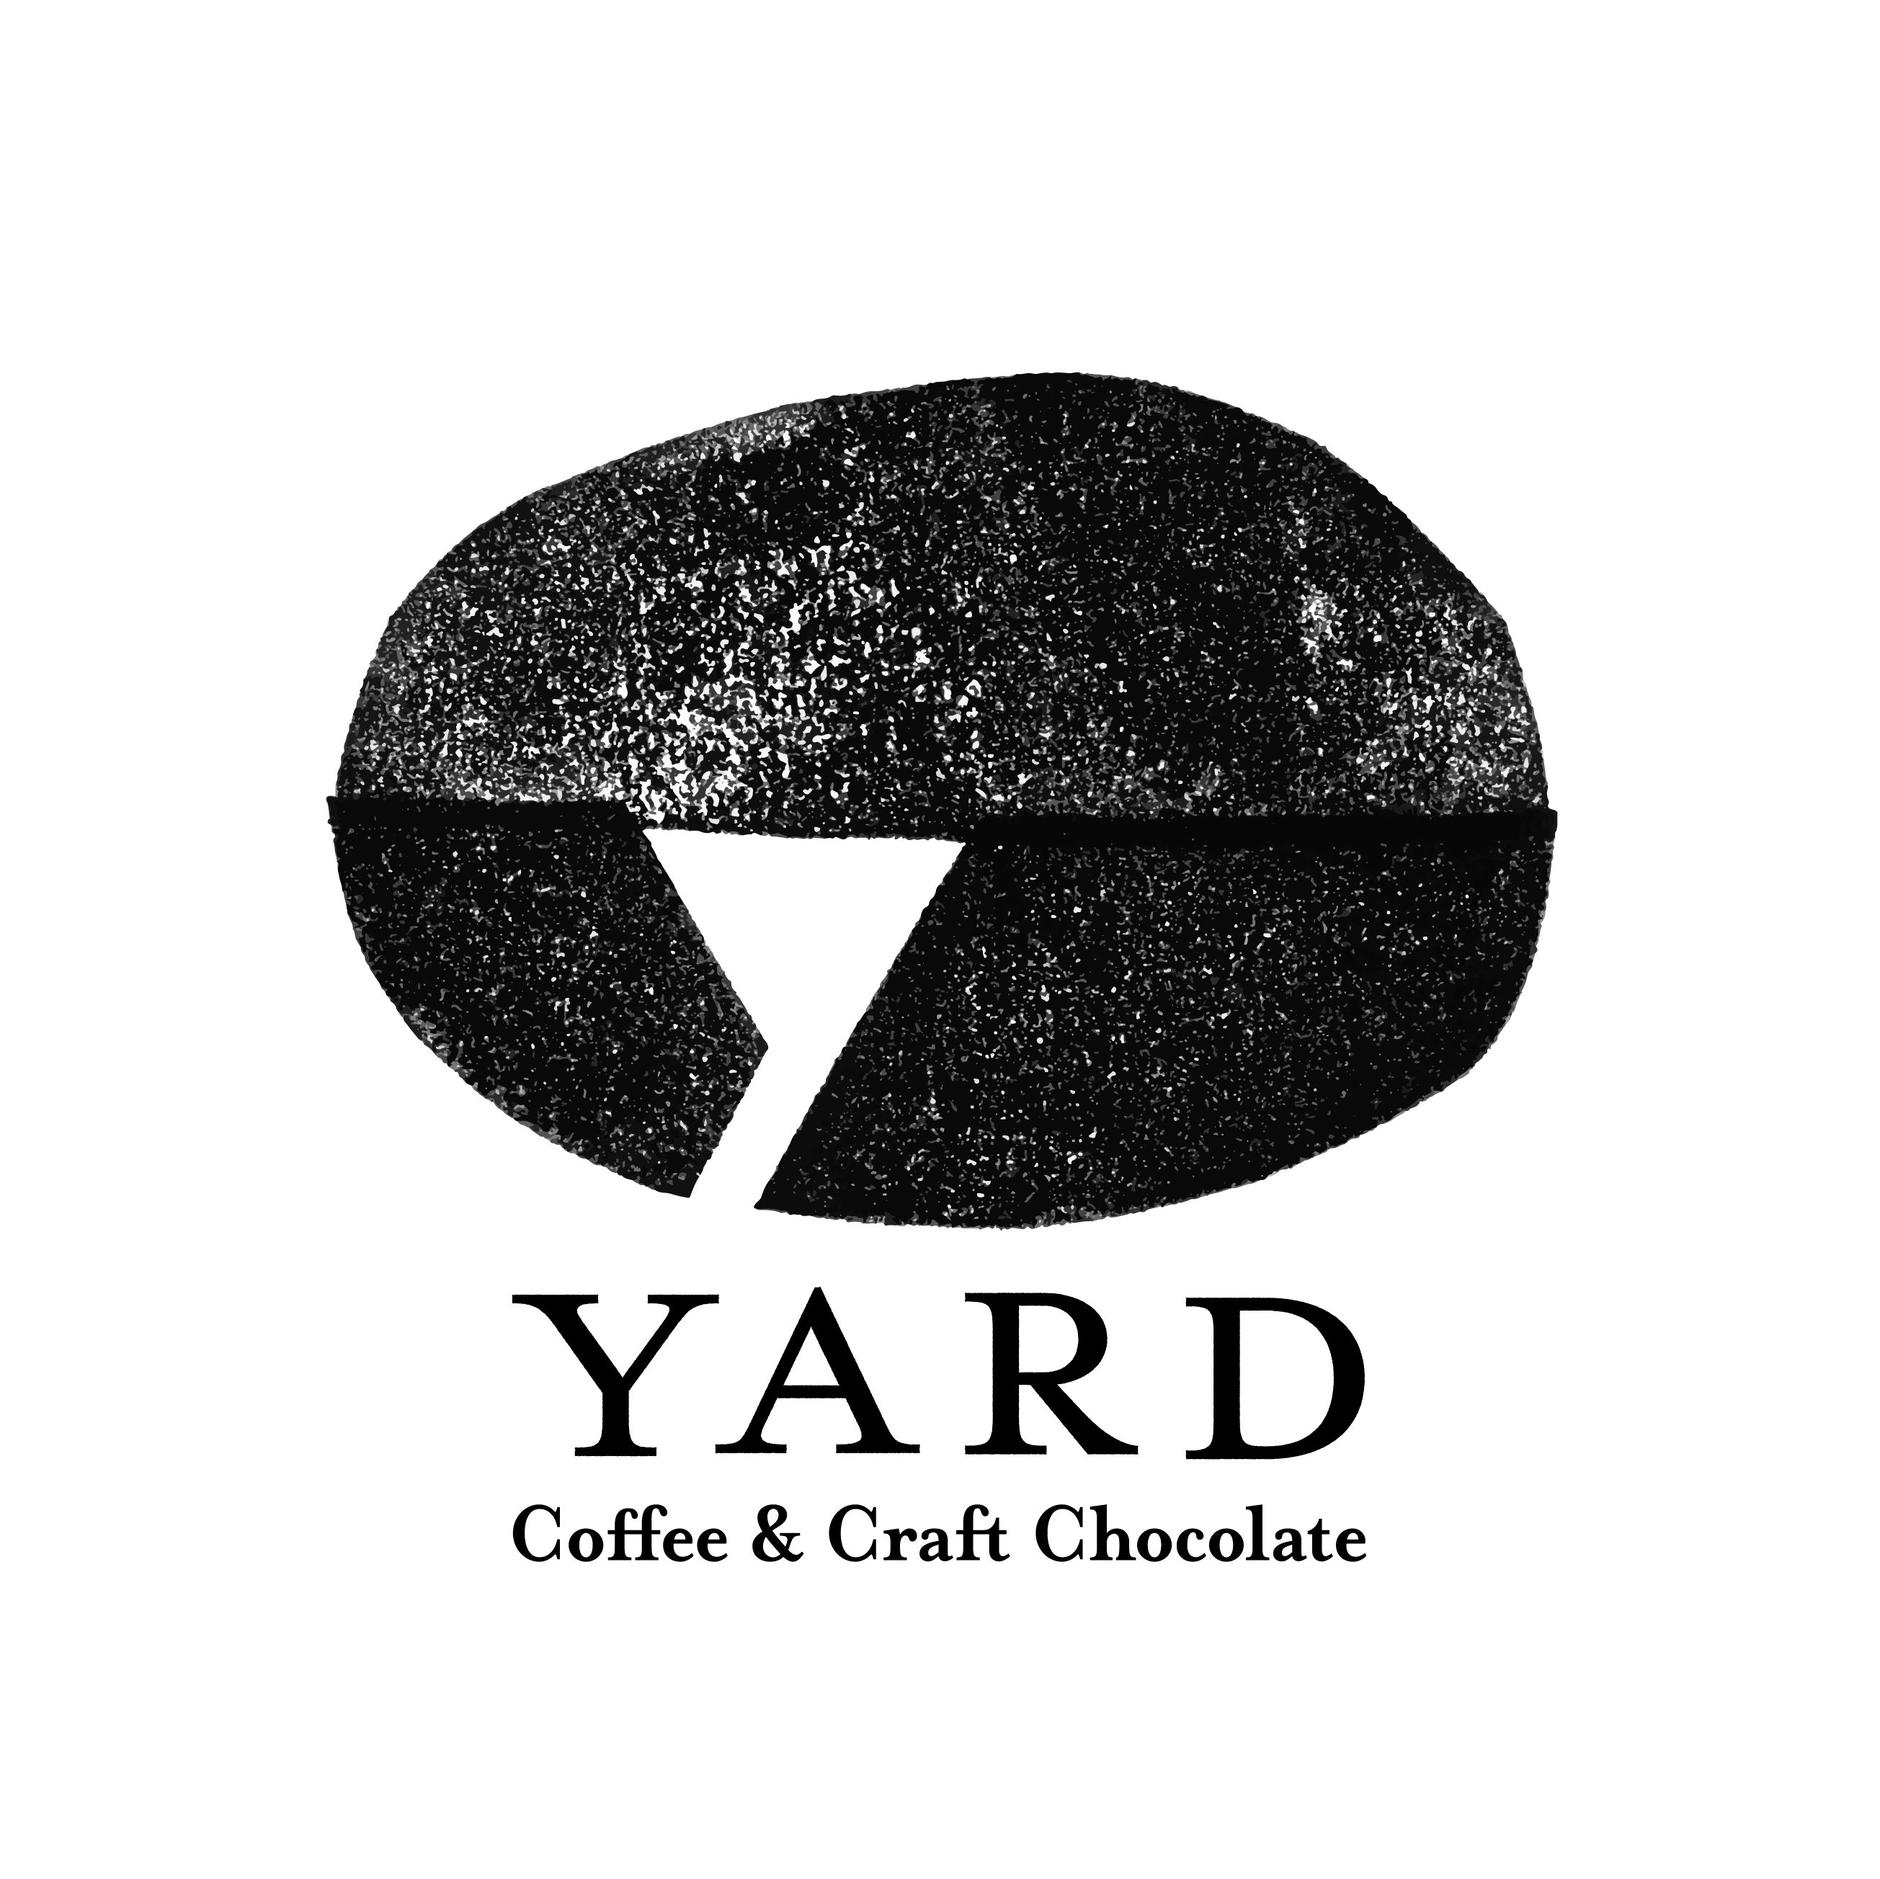 YARD Coffee & Craft Chocolate ONLINE STORE